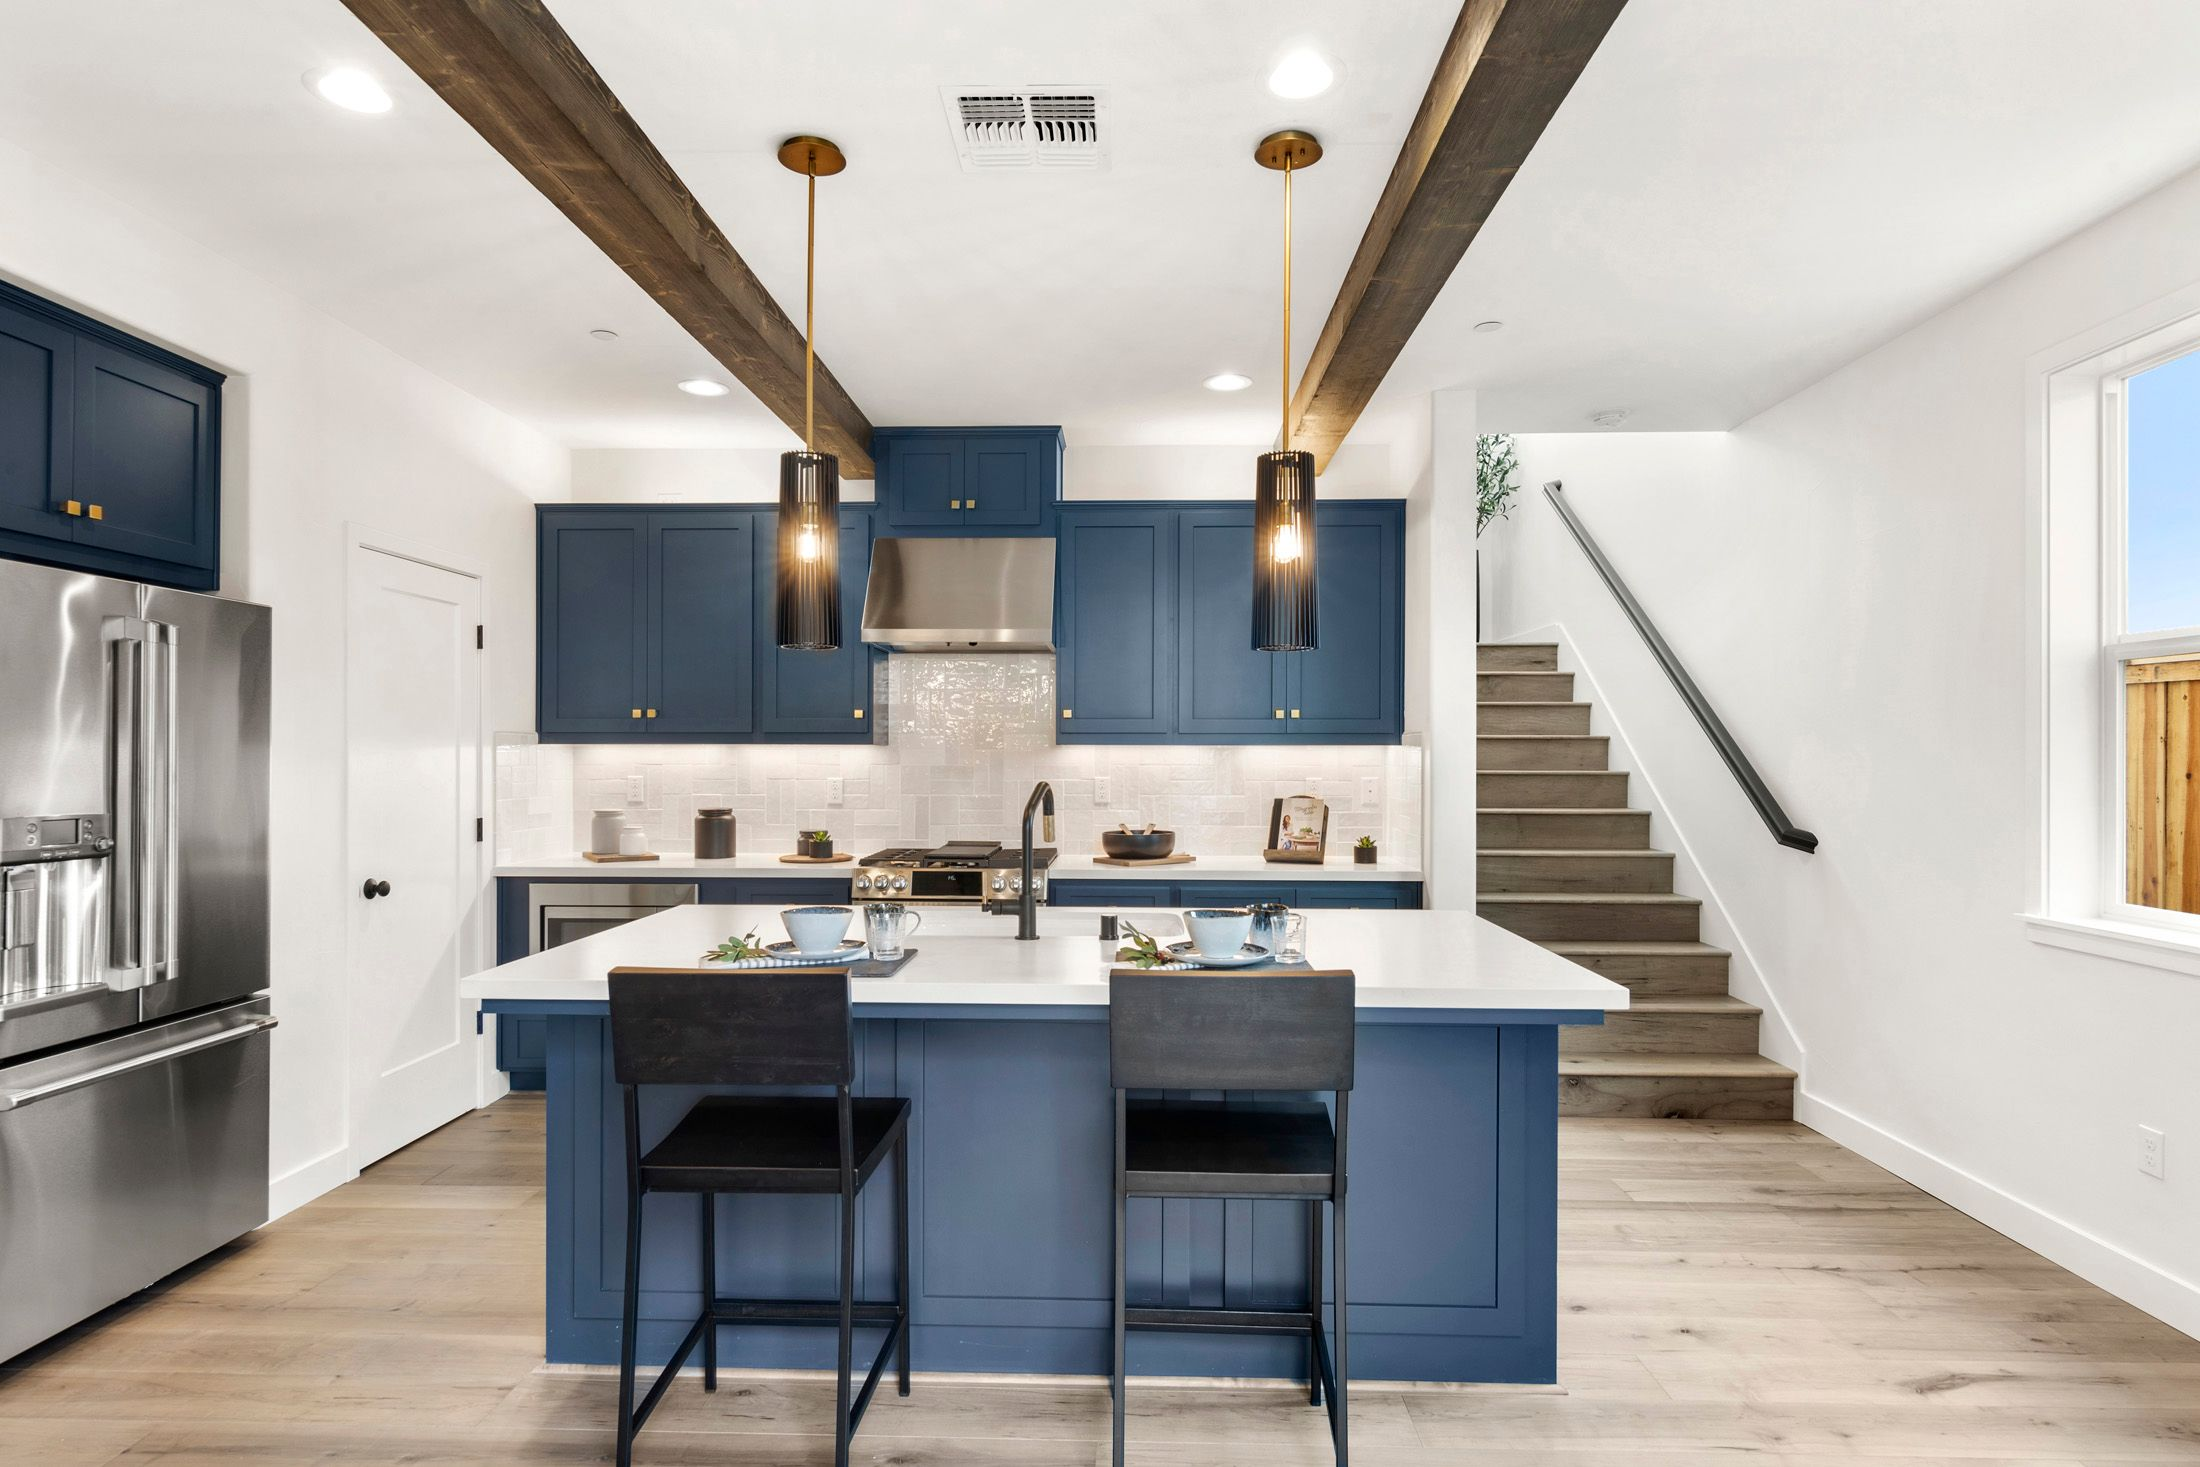 Kitchen featured in the Millstone Residence 3 By BlackPine Communites in Sacramento, CA